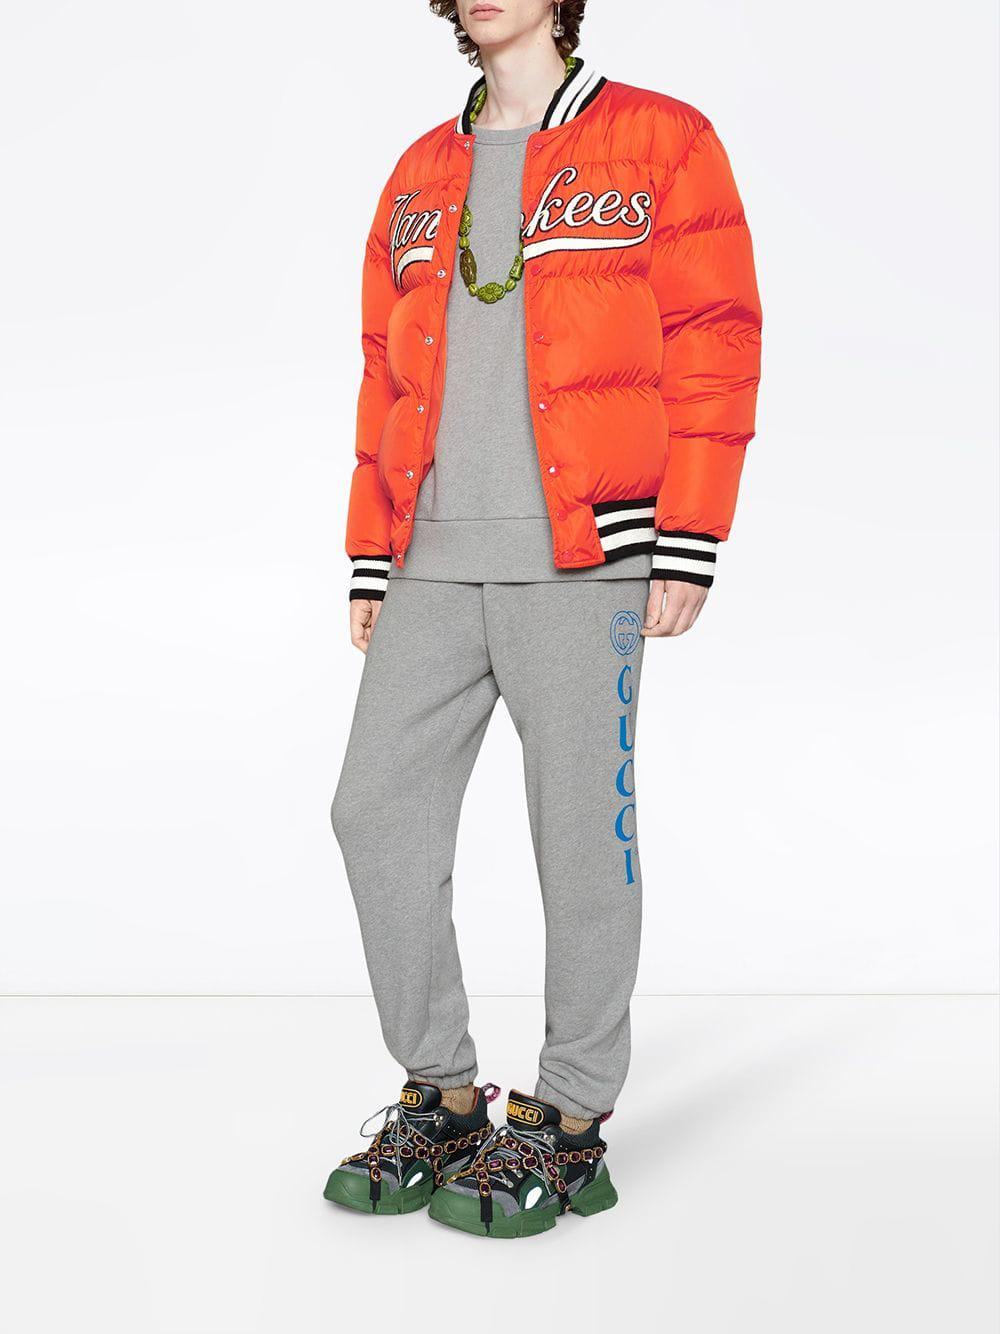 ee0858b1728 Lyst - Gucci Sweatshirt With La Angelstm Patch in Gray for Men